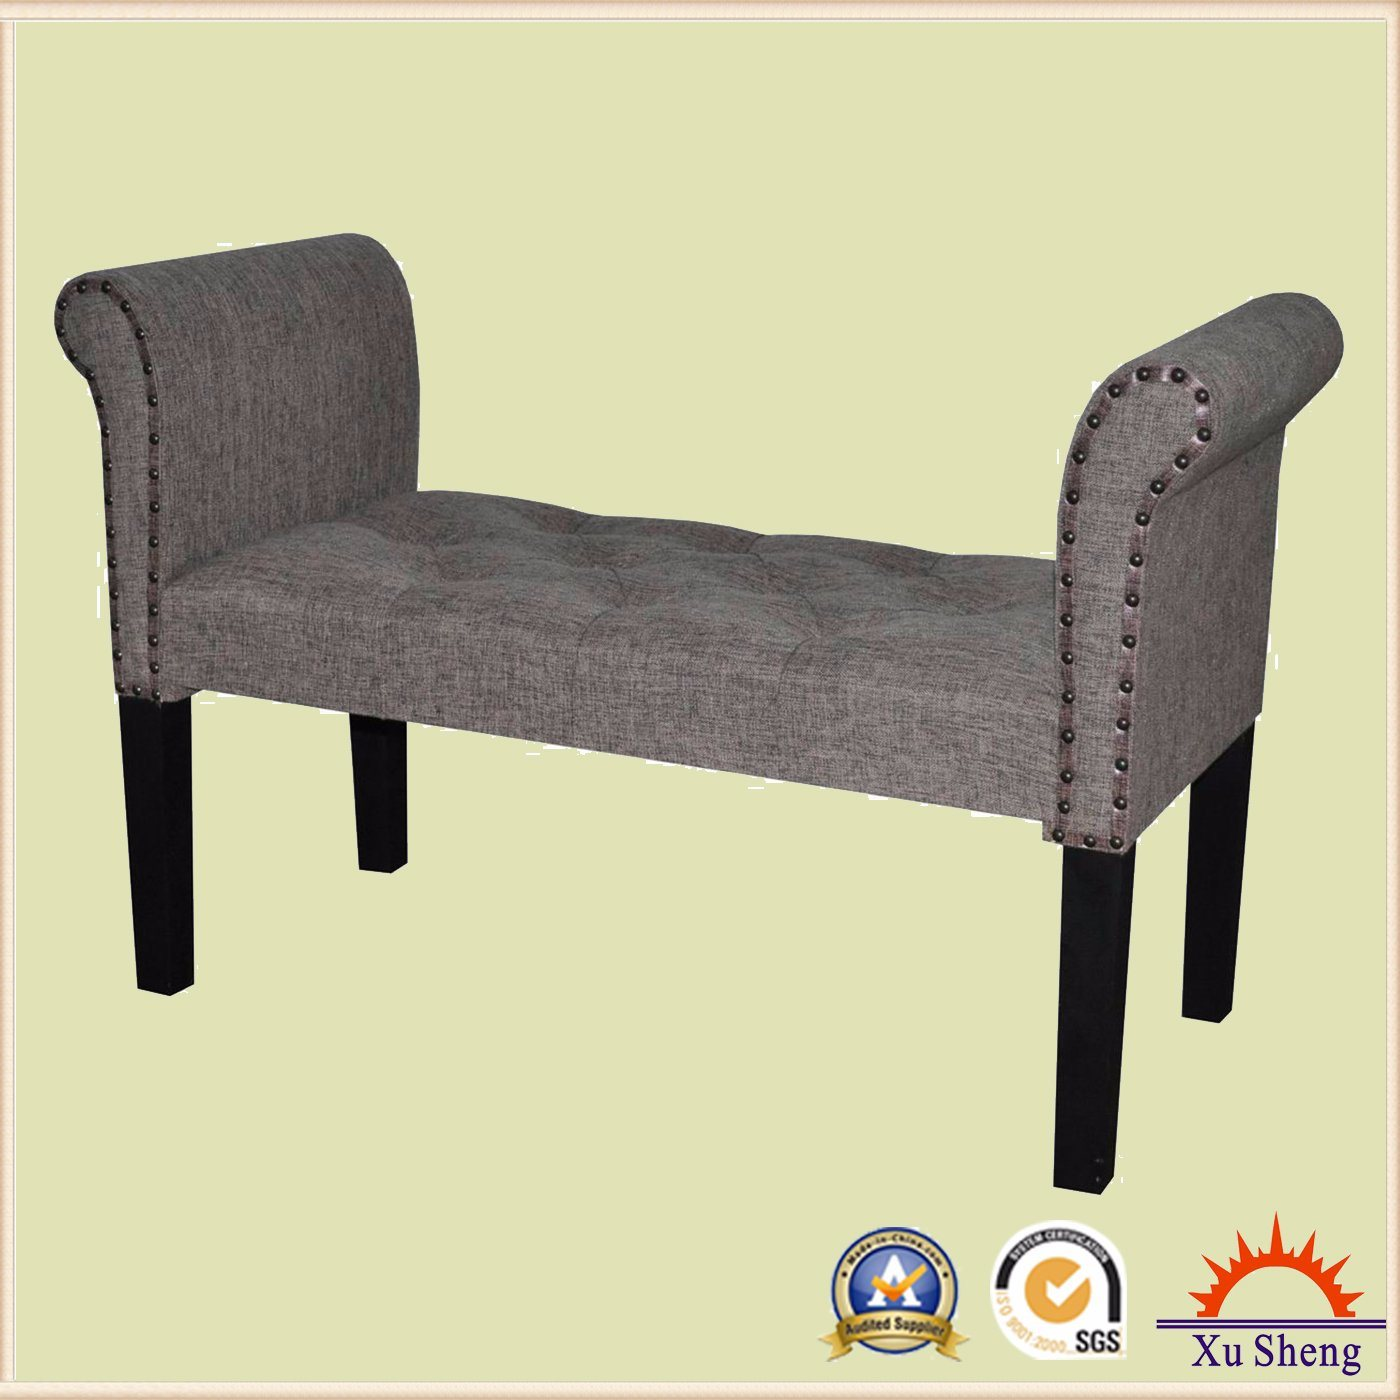 Home Furniture Accent Button Tufted Wooden Single Bench, Loveseat